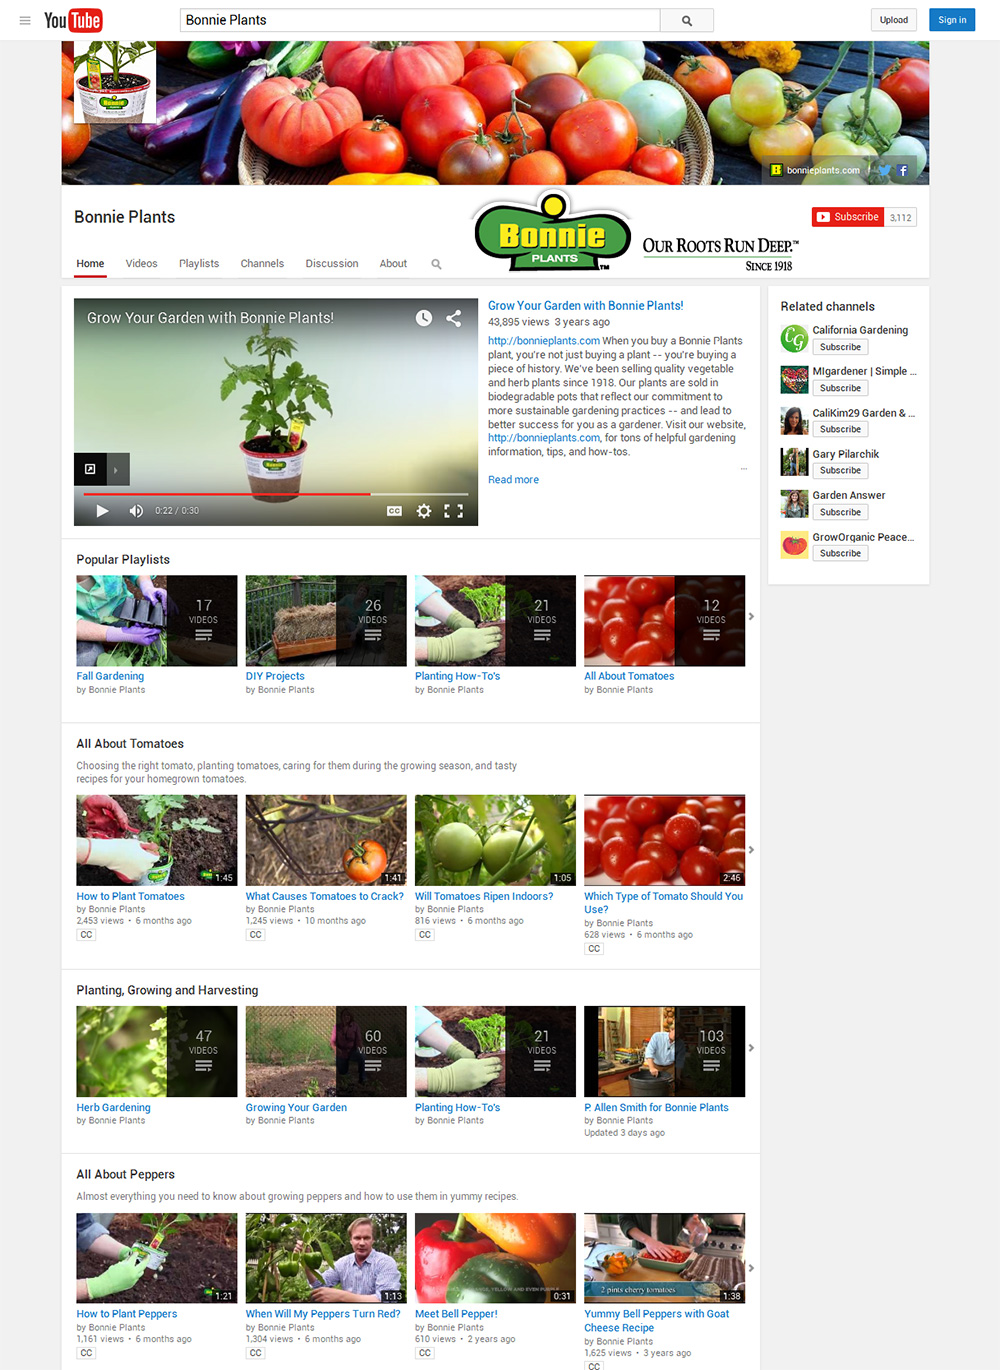 Bonnie Plants YouTube channel